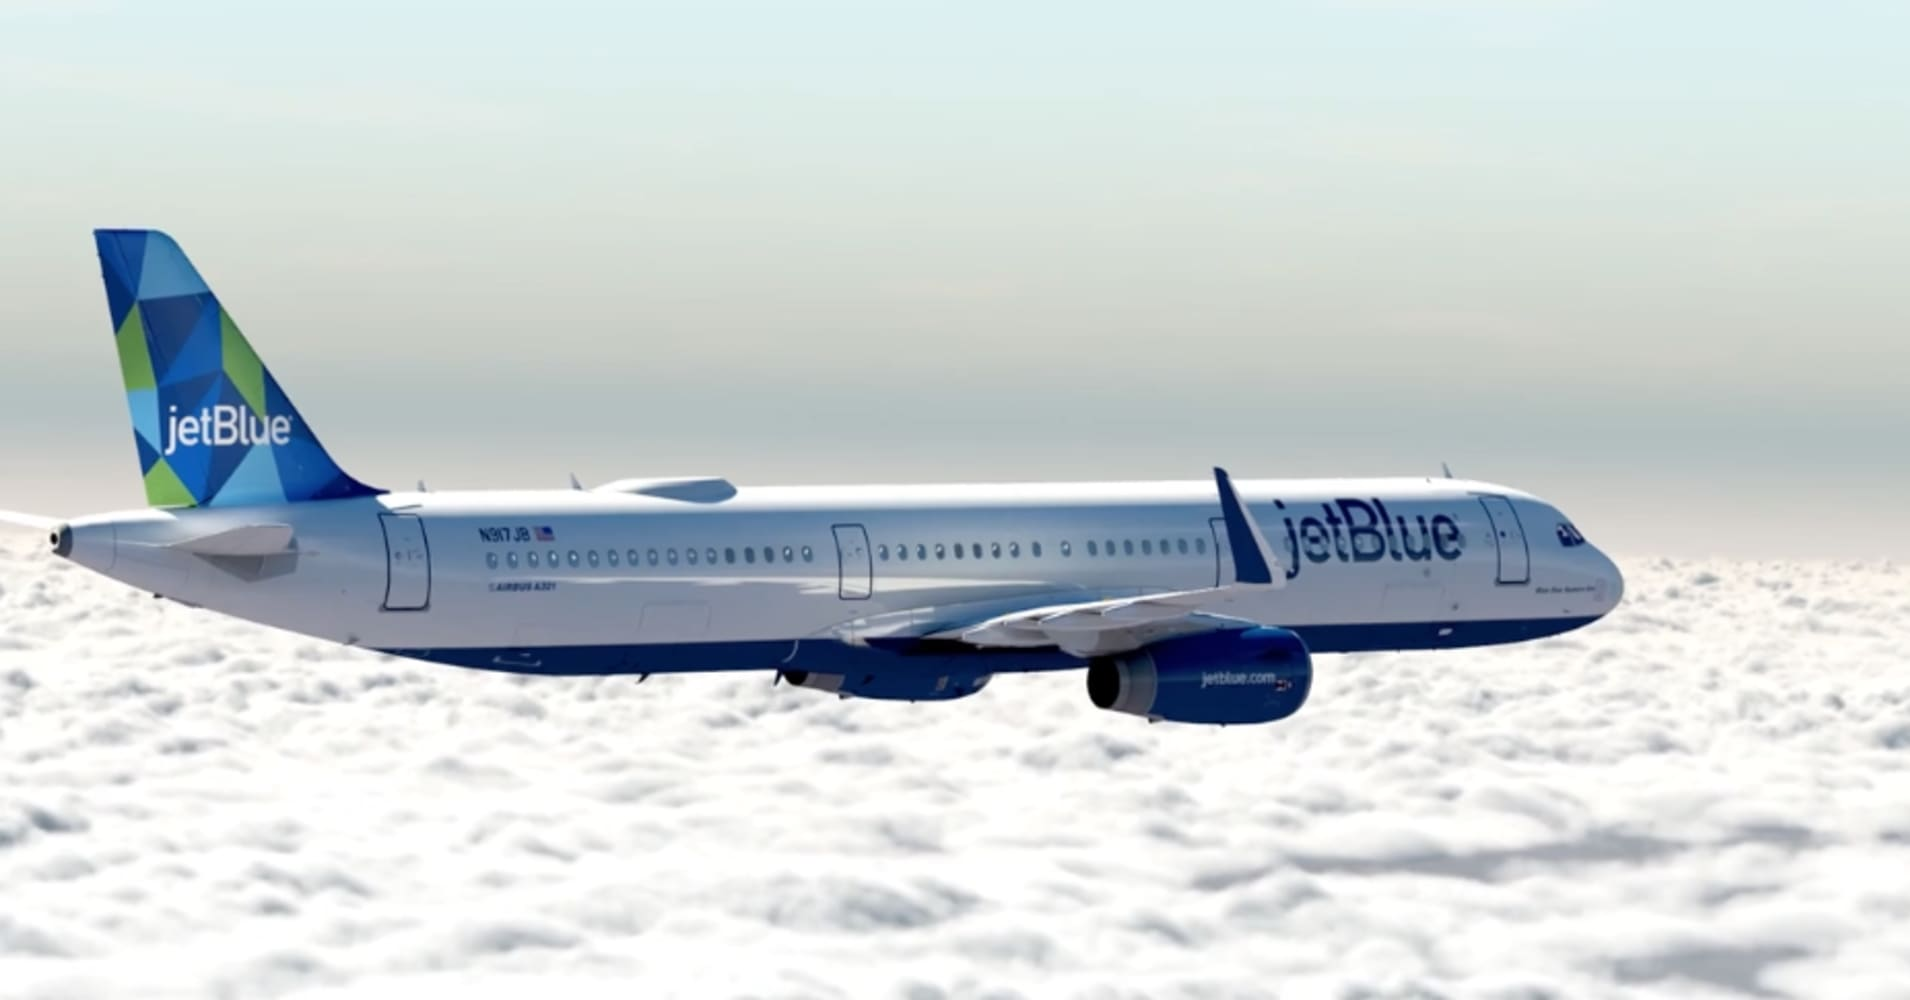 jetblue flash sale fares as low as 49 including the caribbean